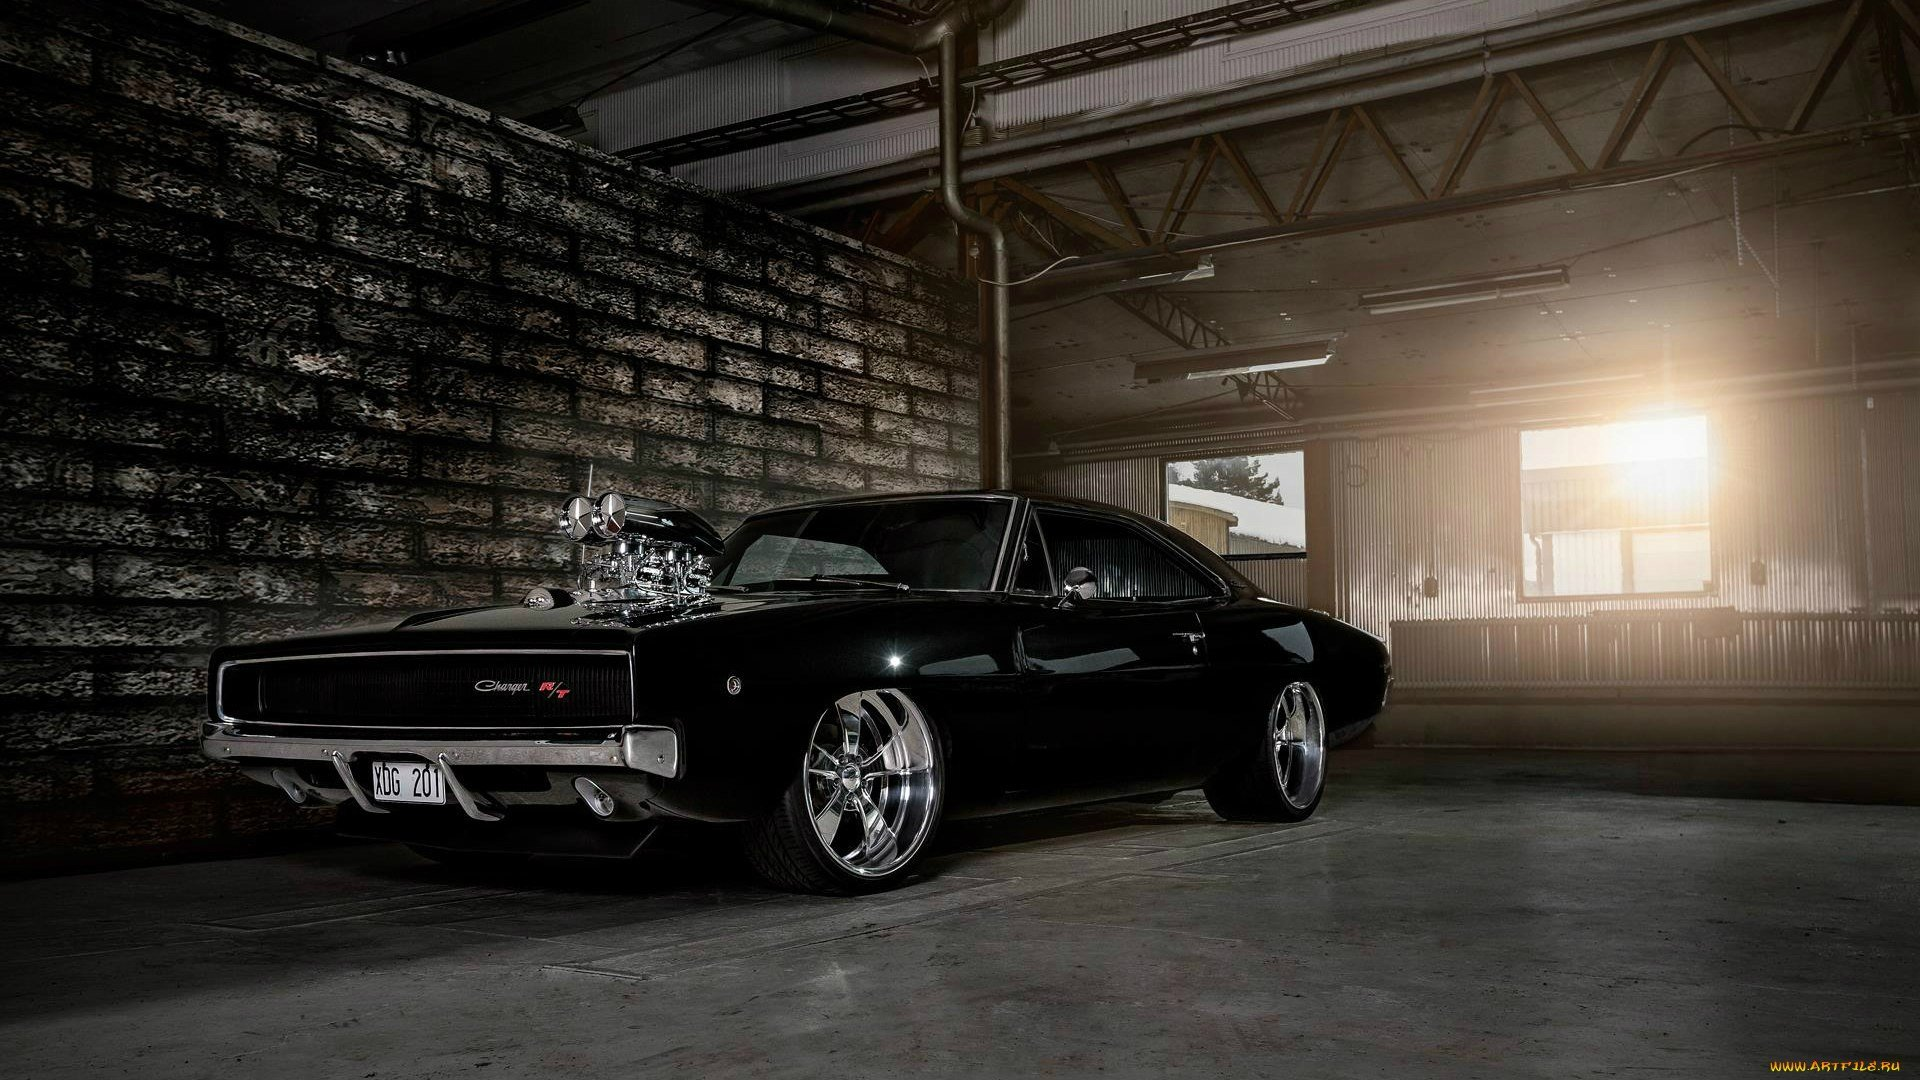 Dodge Charger 1968 muscle cars hot rod engine wallpaper 1920x1080 1920x1080